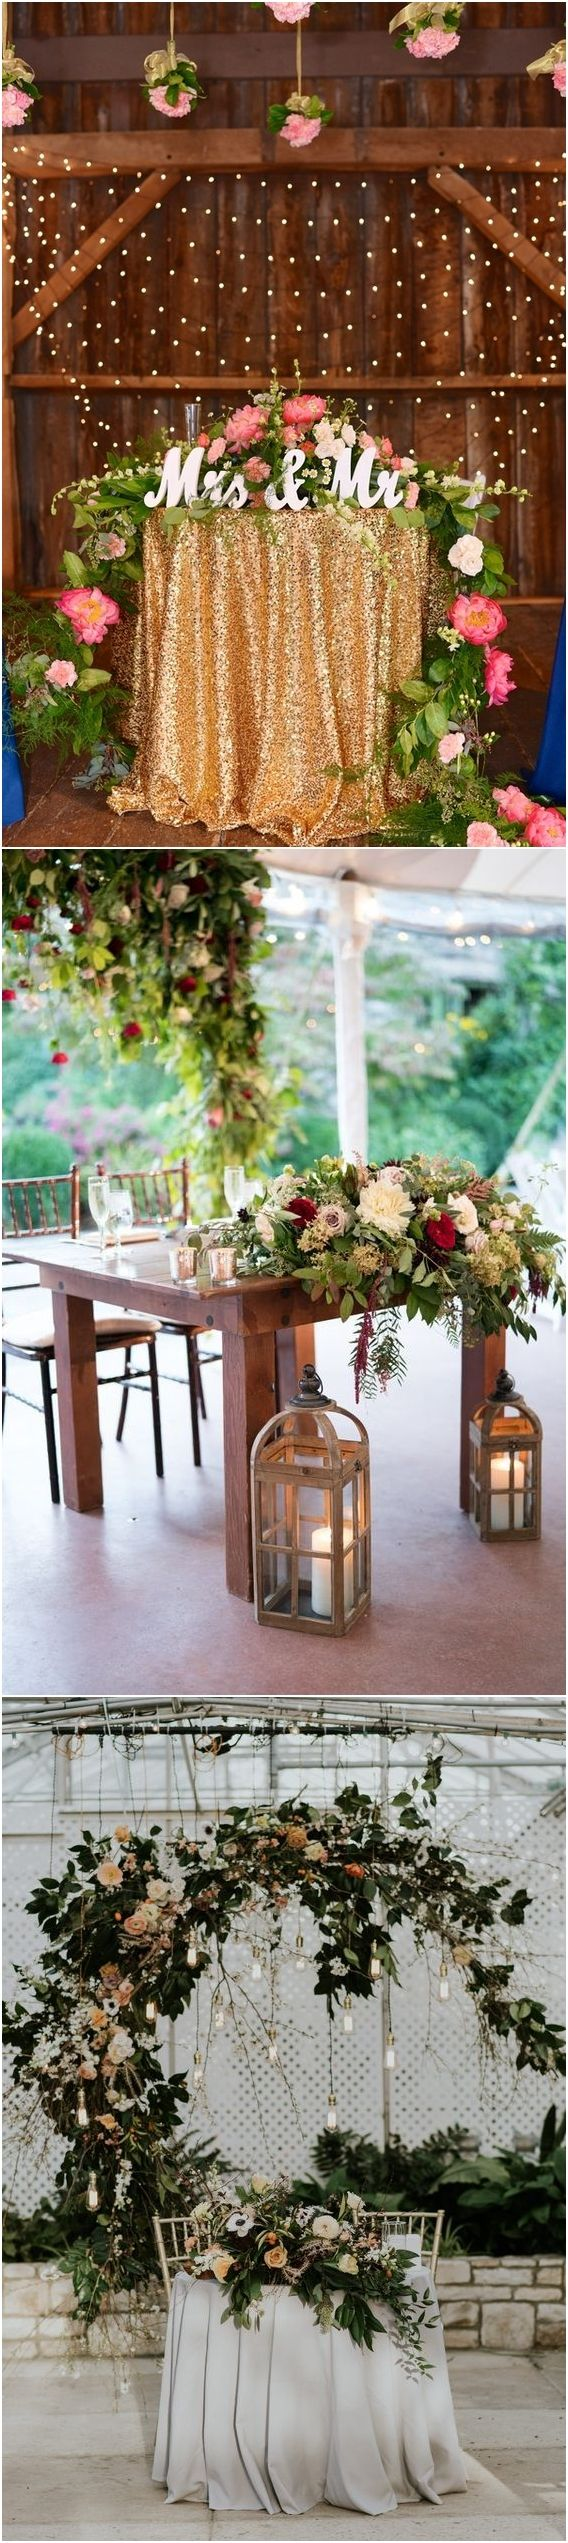 20 Rustic Country Wedding Head Sweetheart Table Ideas Country Weddings